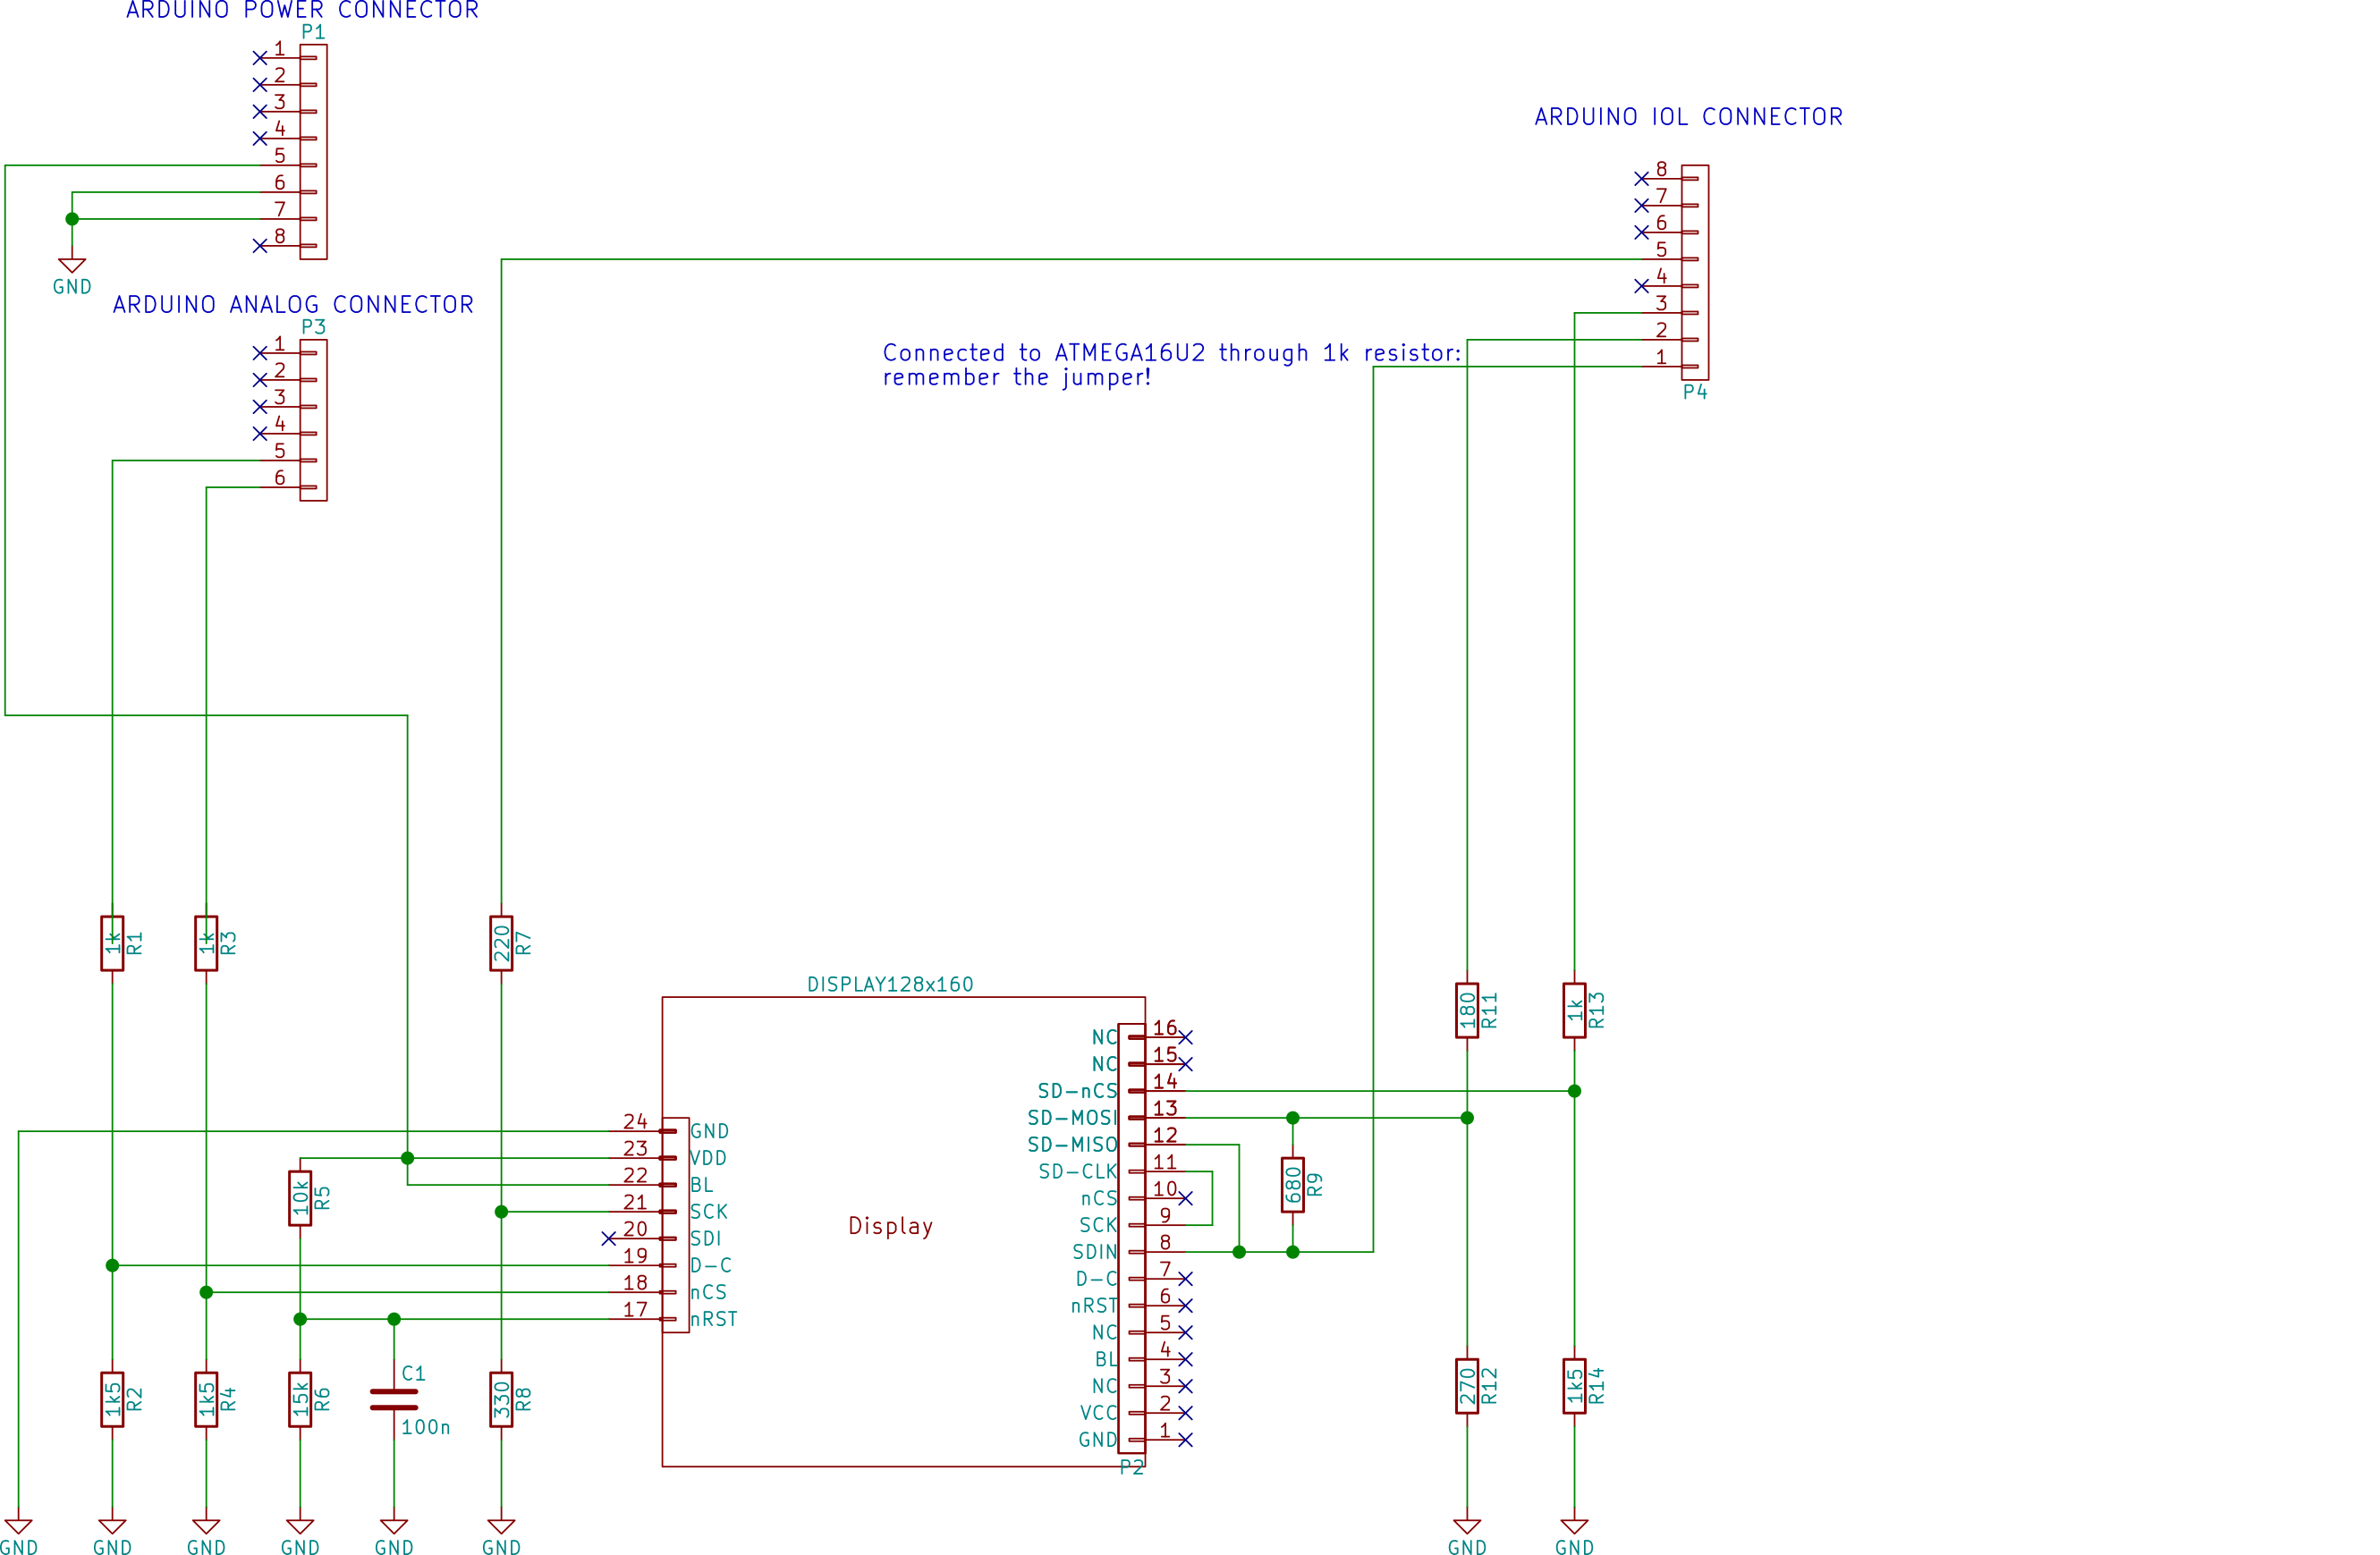 How To Play A Video On Arduino Uno 4 6 Playing 20 Fps Animation Wiring Diagram Moreover Sd Card Reader Fig 9 The Final Schematics With Resistor Values Please Note That Display Lines Sck Sdi D C Ncs Nrst Are Connected Both Connector